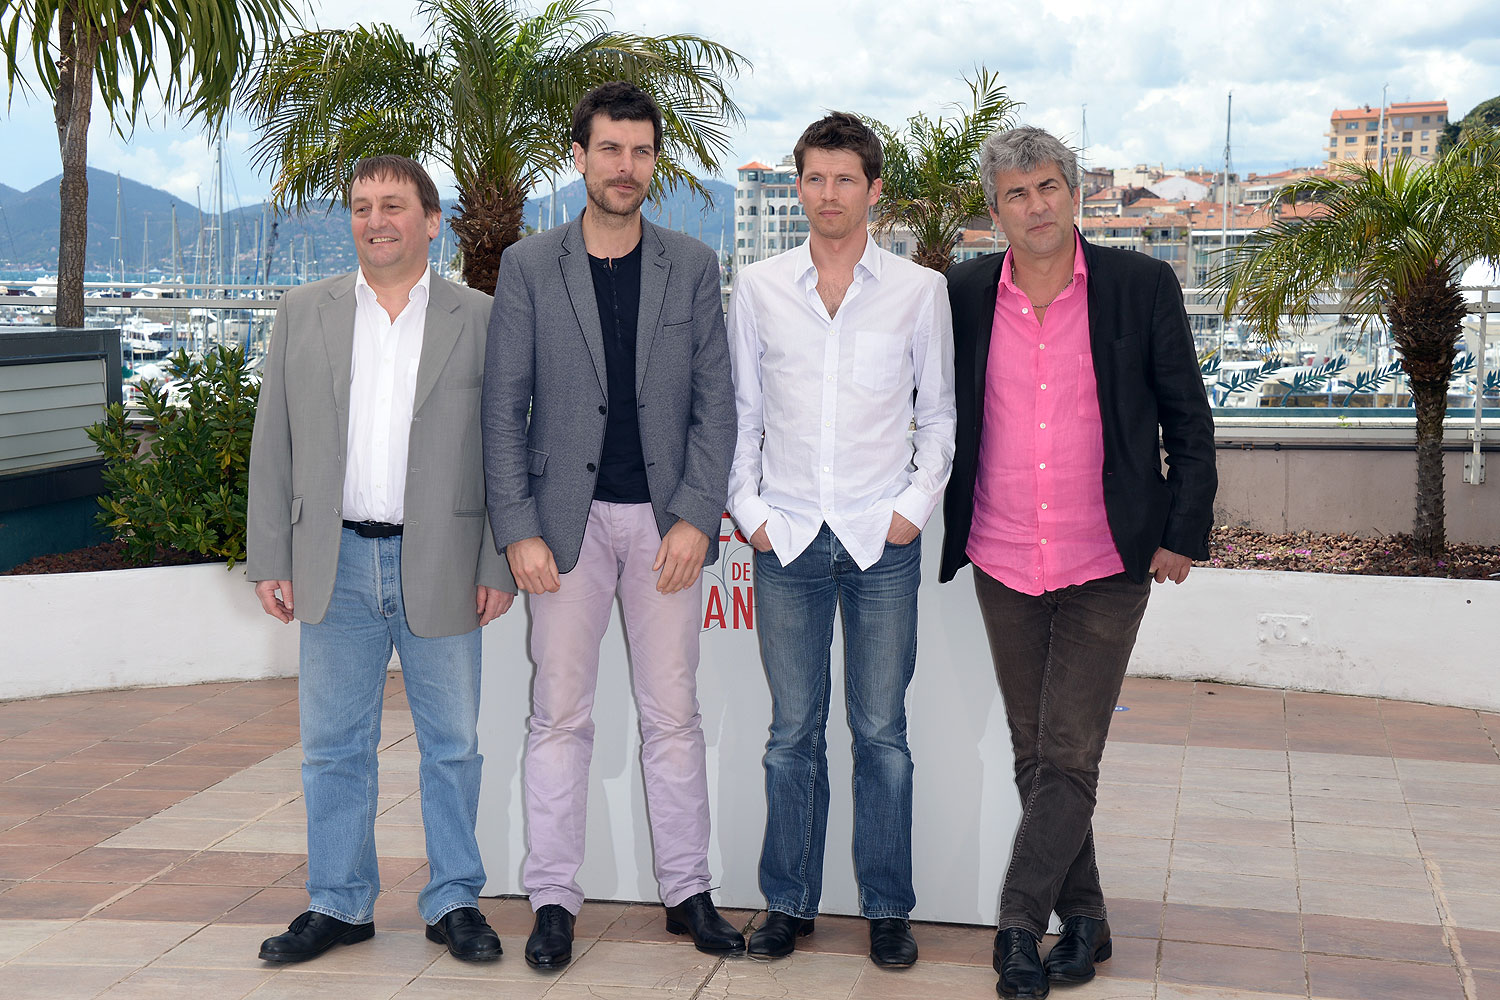 Actors Patrick d'Assumcao, Christophe Paou, Pierre Deladonchamps and director Alain Guiraudie attend the photocall for 'L'Inconnu Du Lac' (Stranger by the Lake) during the 66th Annual Cannes Film Festival at Palais des Festivals on May 17, 2013 in Cannes, France